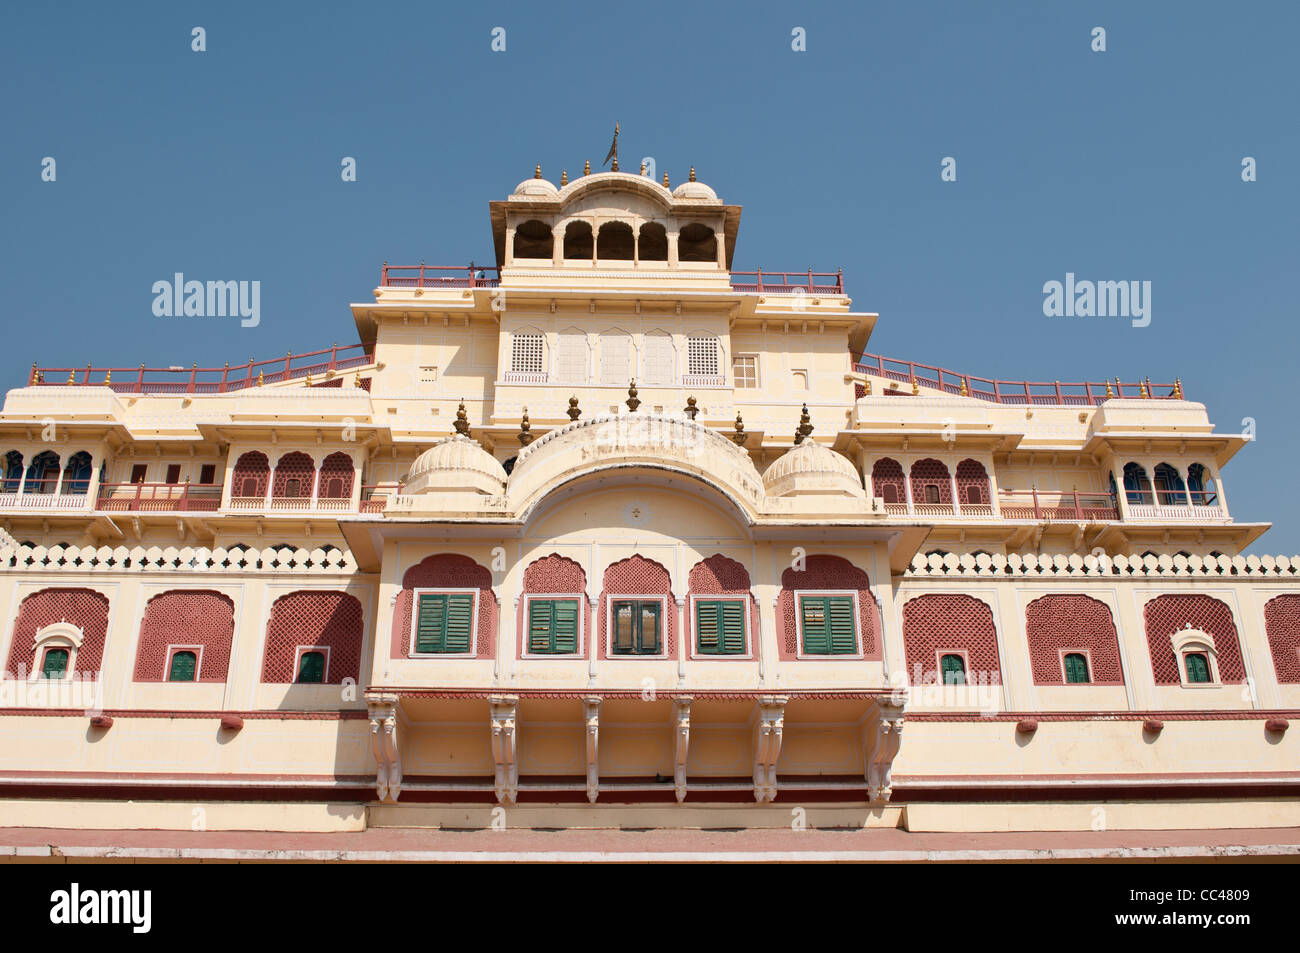 Chandra Mahal, the residence of the royal family, City Palace, Jaipur, India - Stock Image